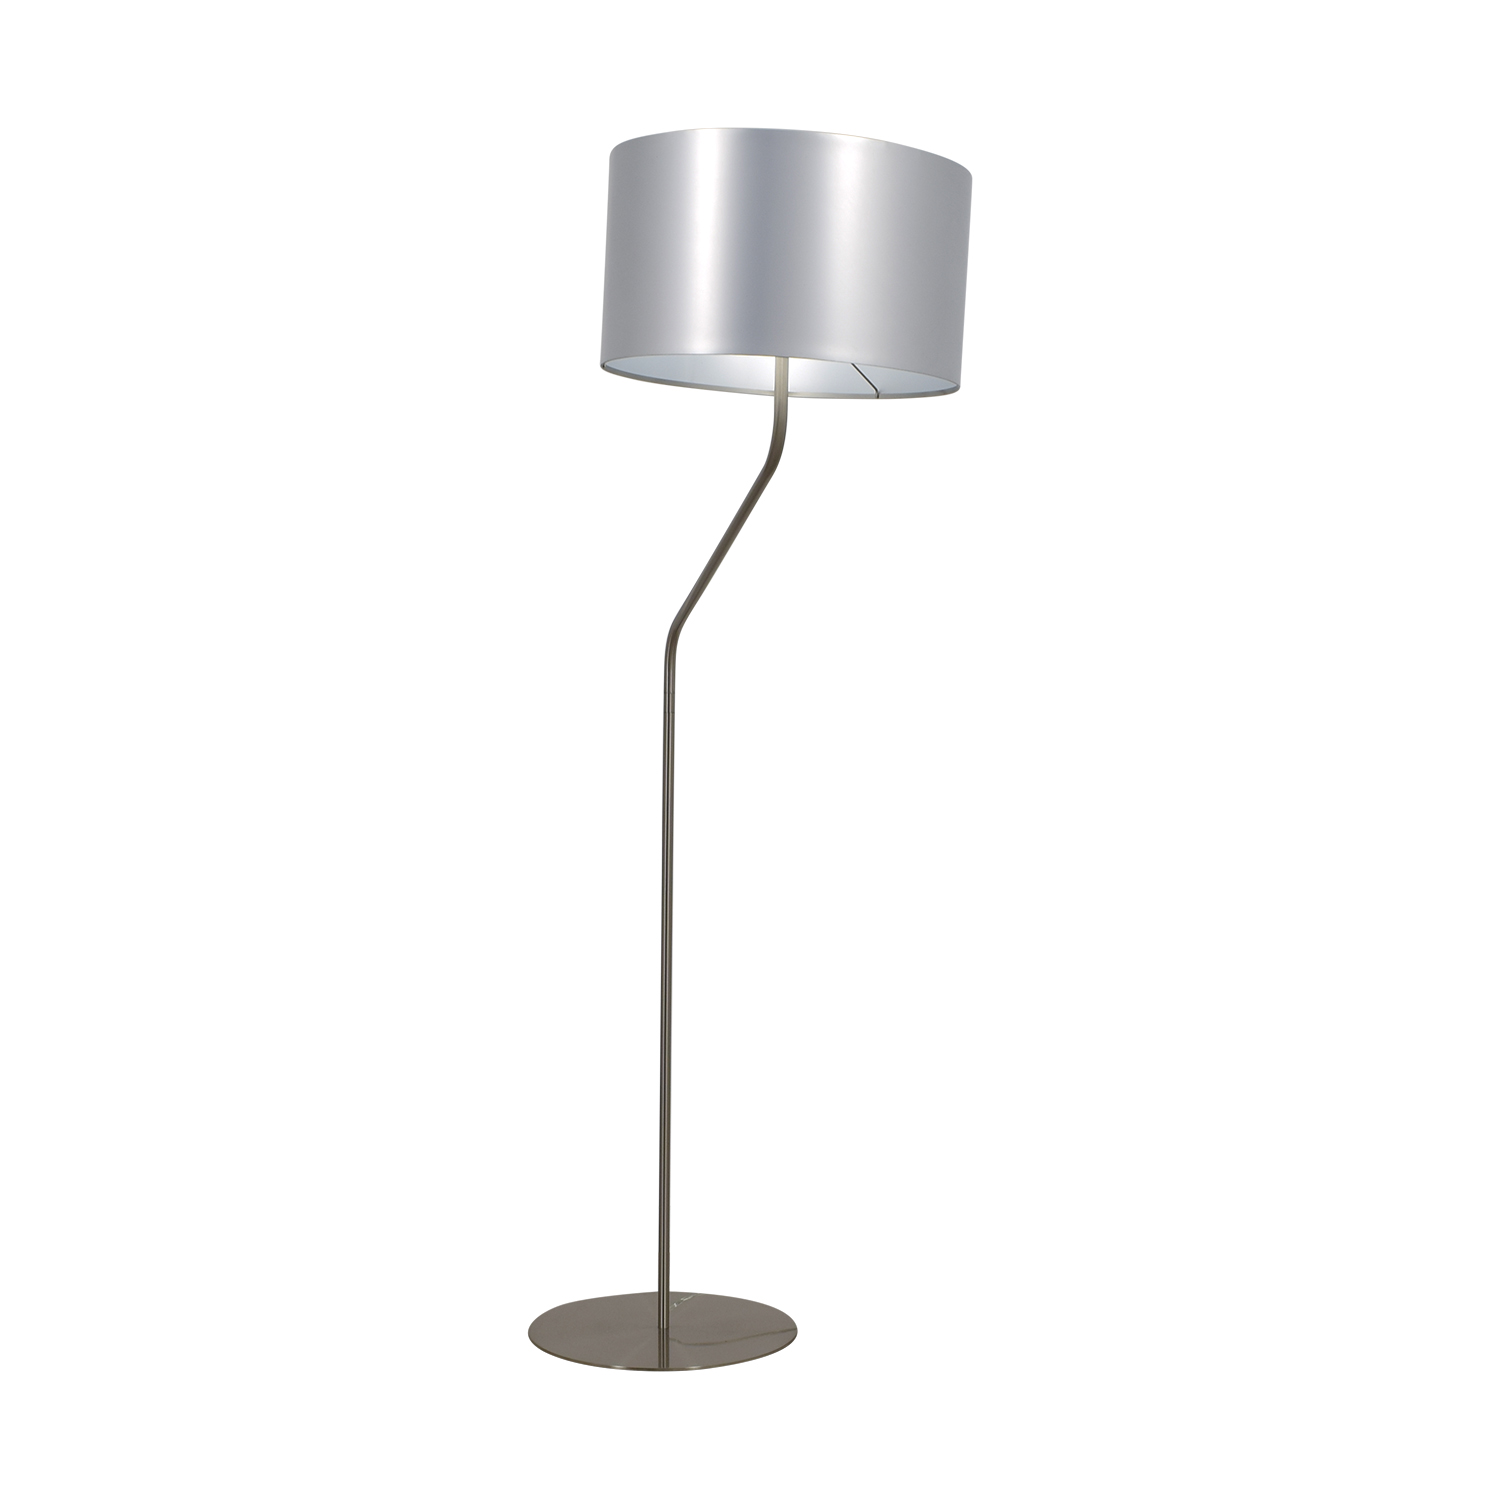 Room & Board Sasha Floor Lamp / Decor